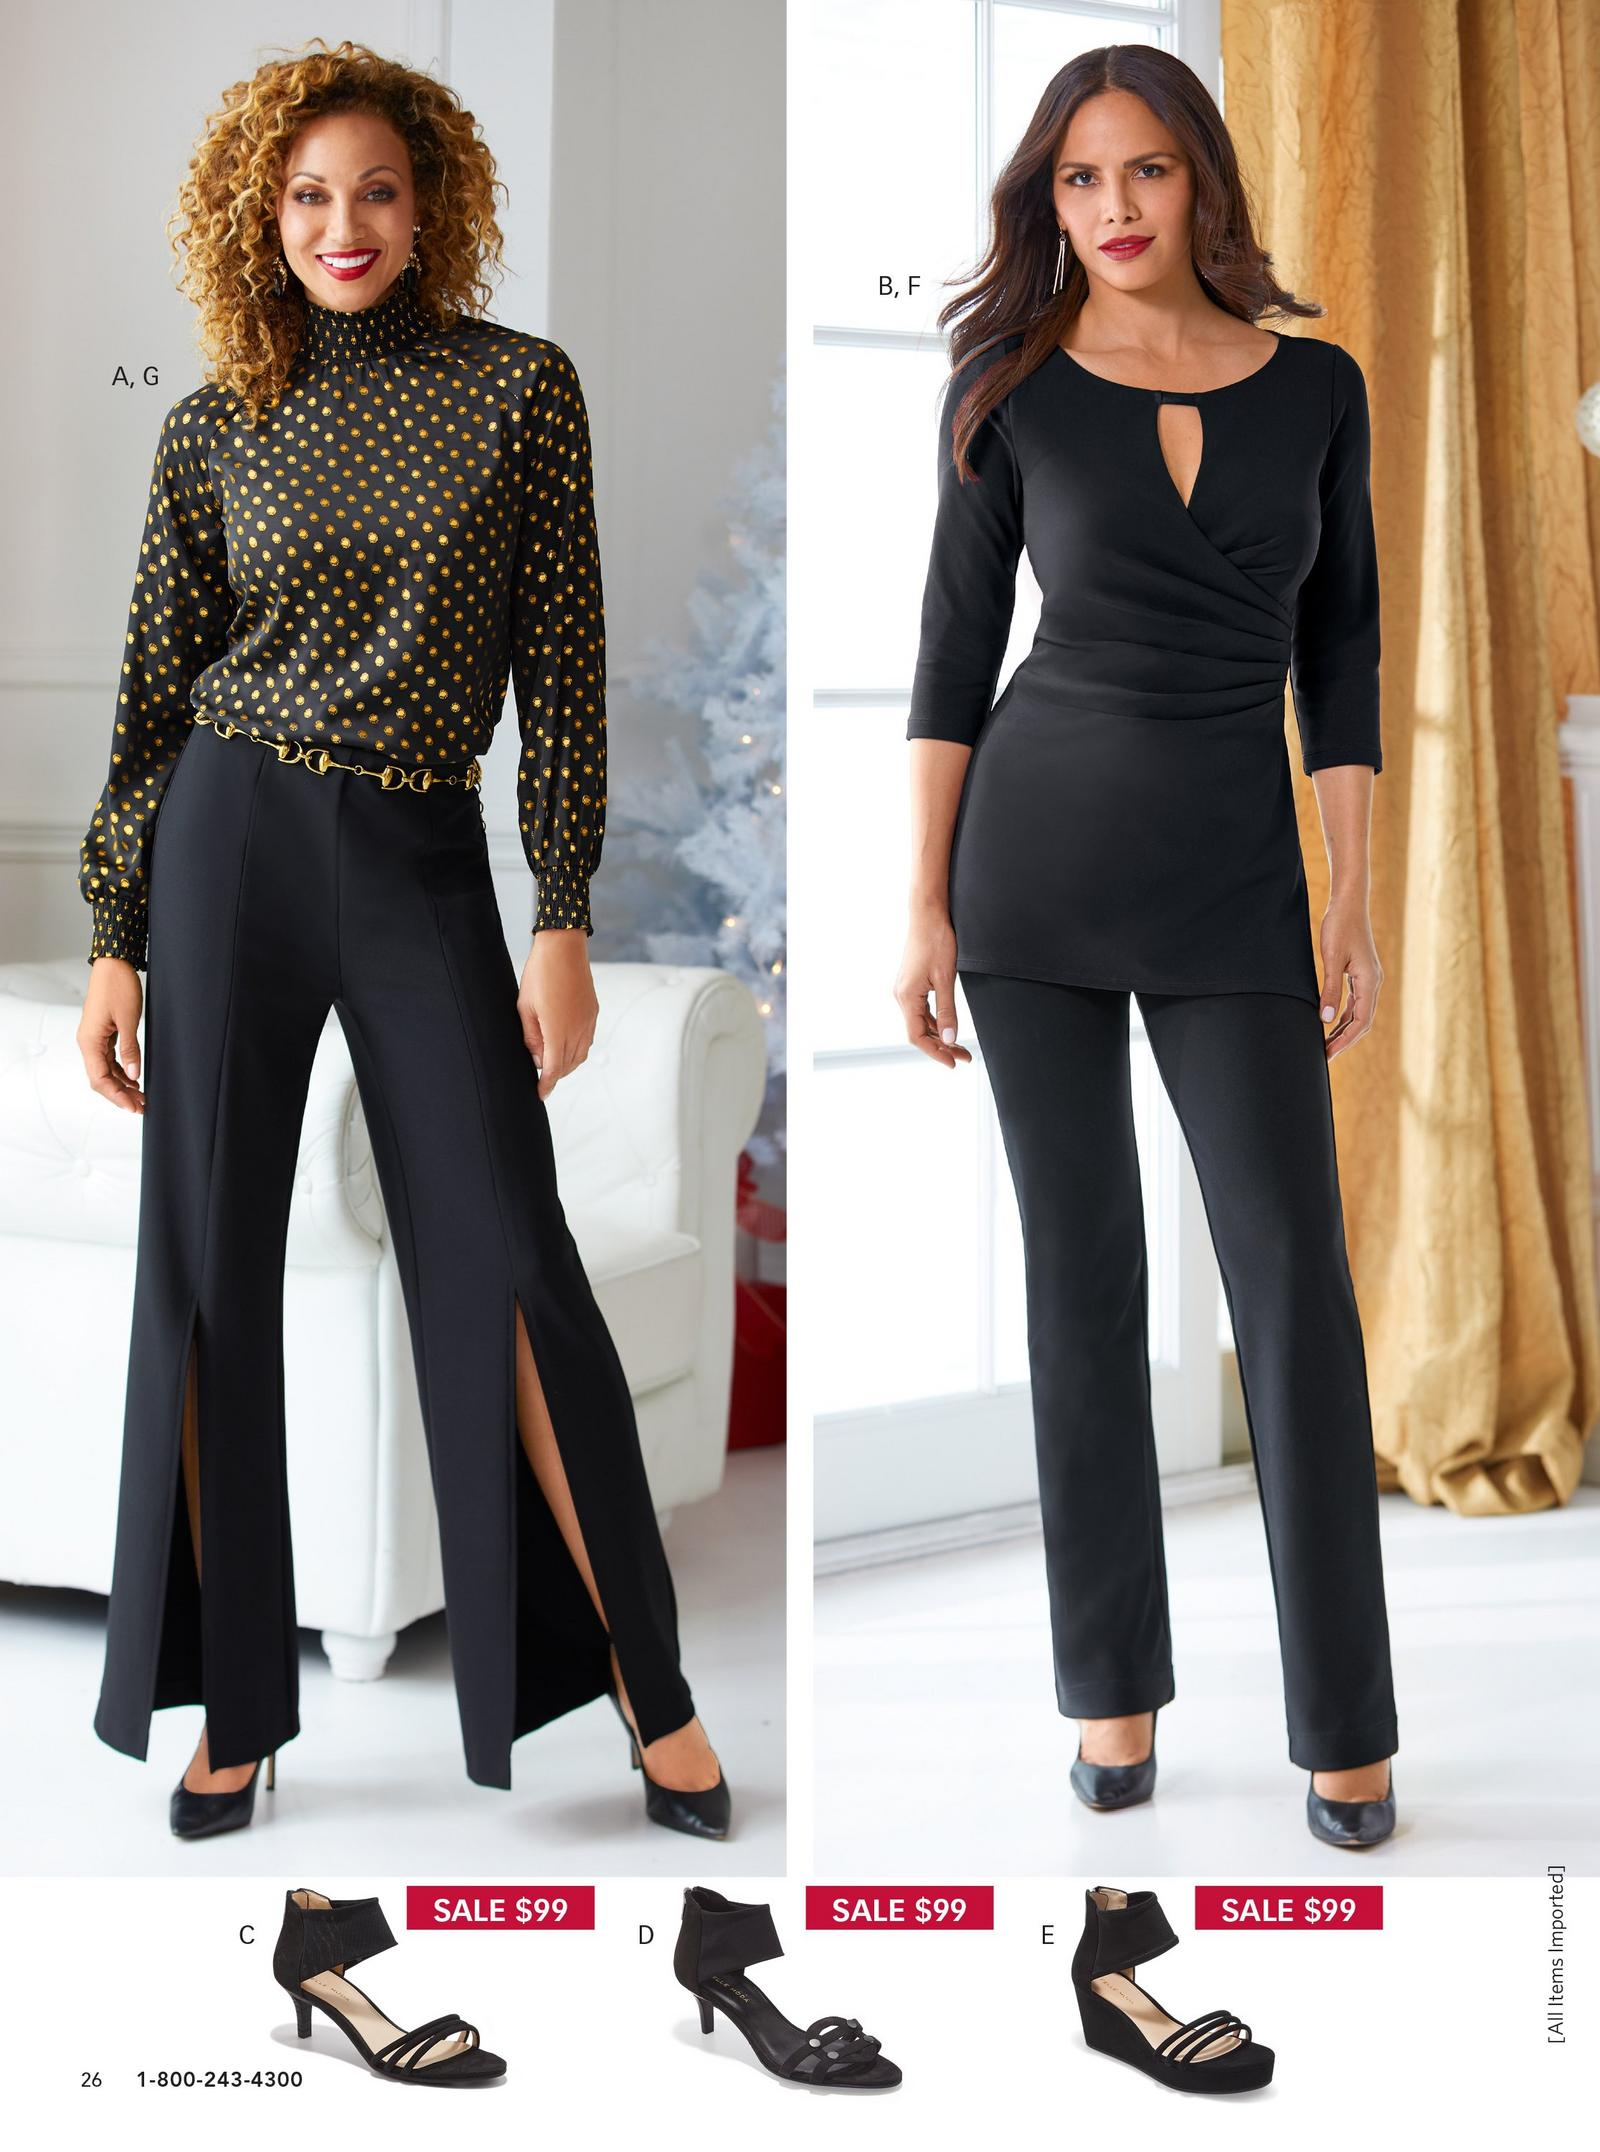 left model wearing high neck black top with gold dots and black high-waist pants. right model wearing black keyhole top with black pants.